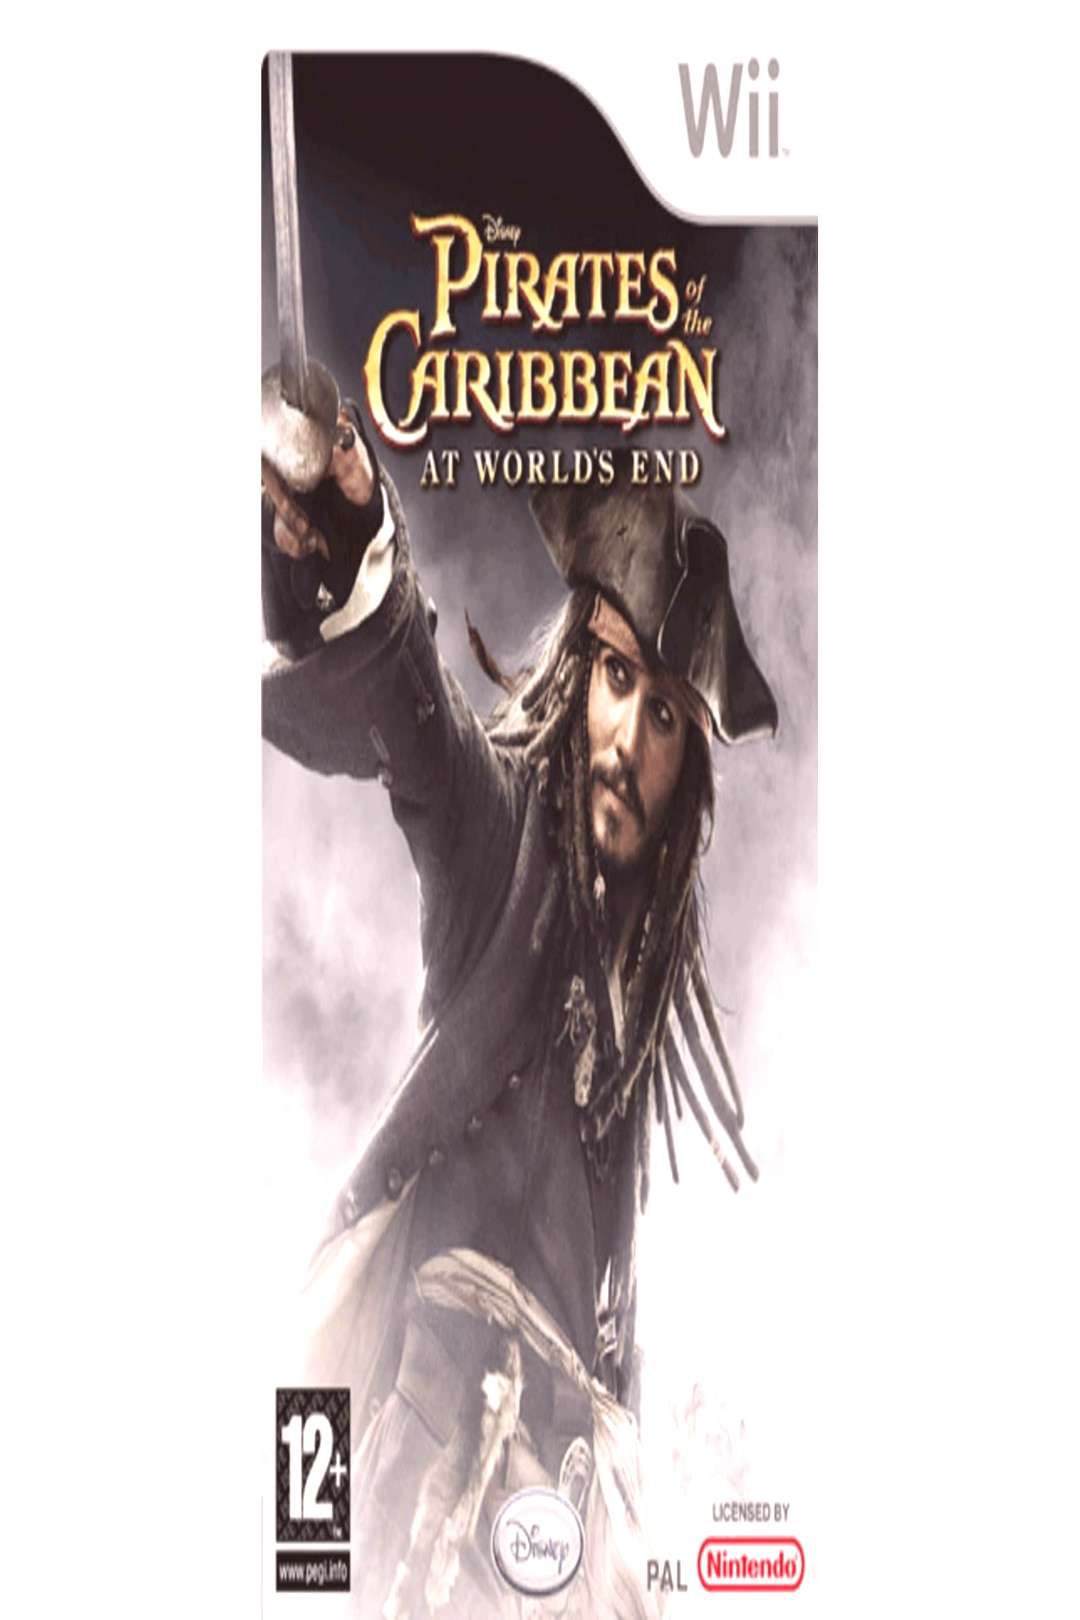 Buy Pirates of the Caribbean At Worlds End on Wii GAME ,